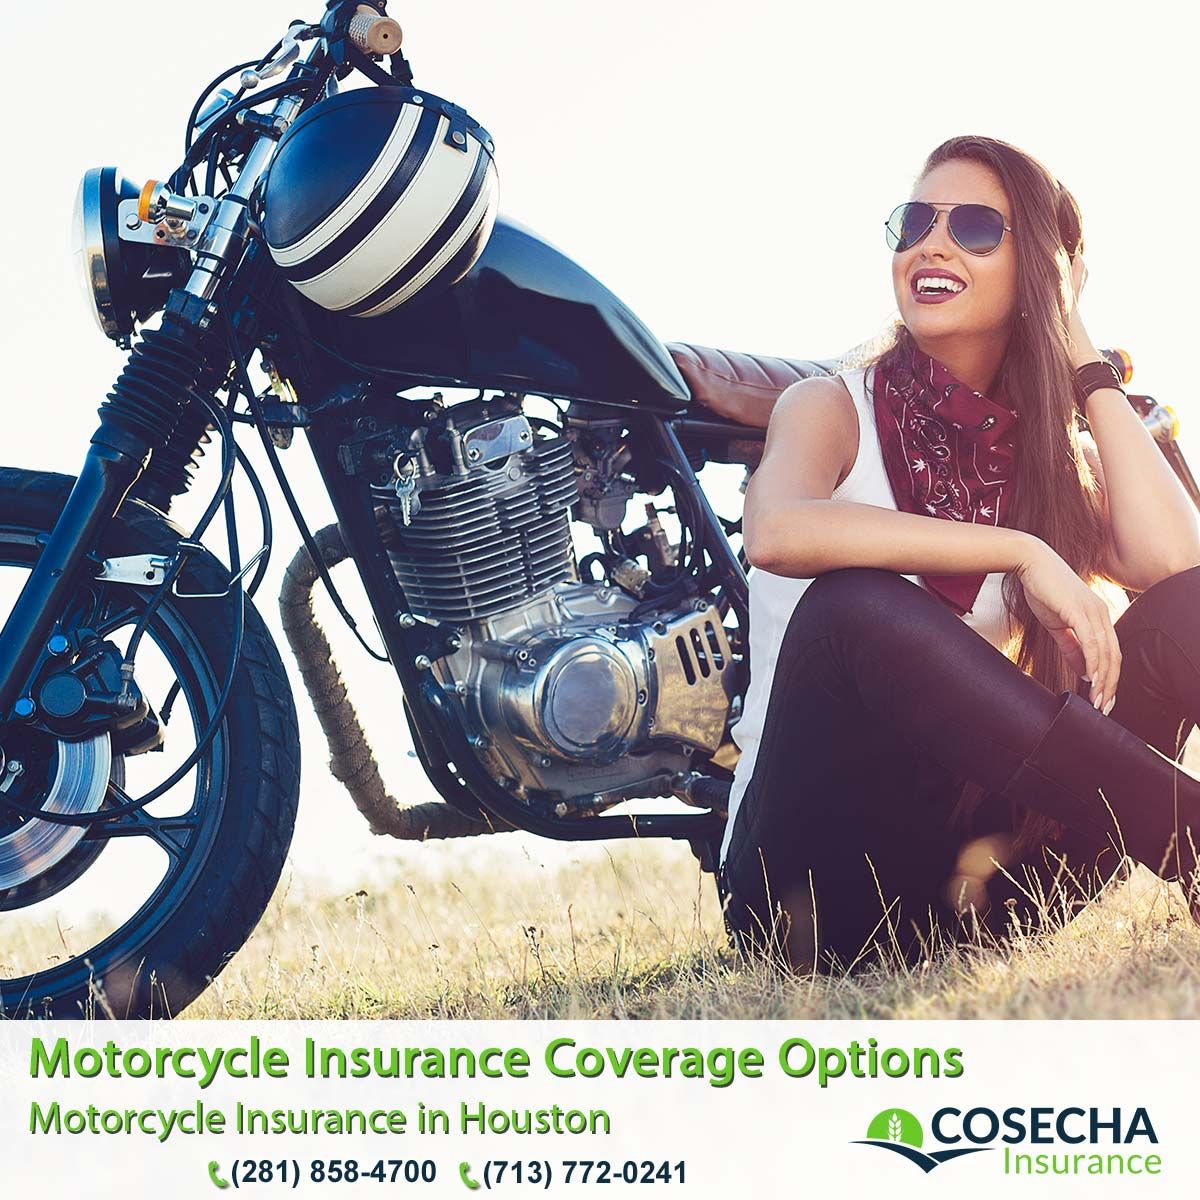 Motorcycle Insurance Coverage OptionsMotorcycle